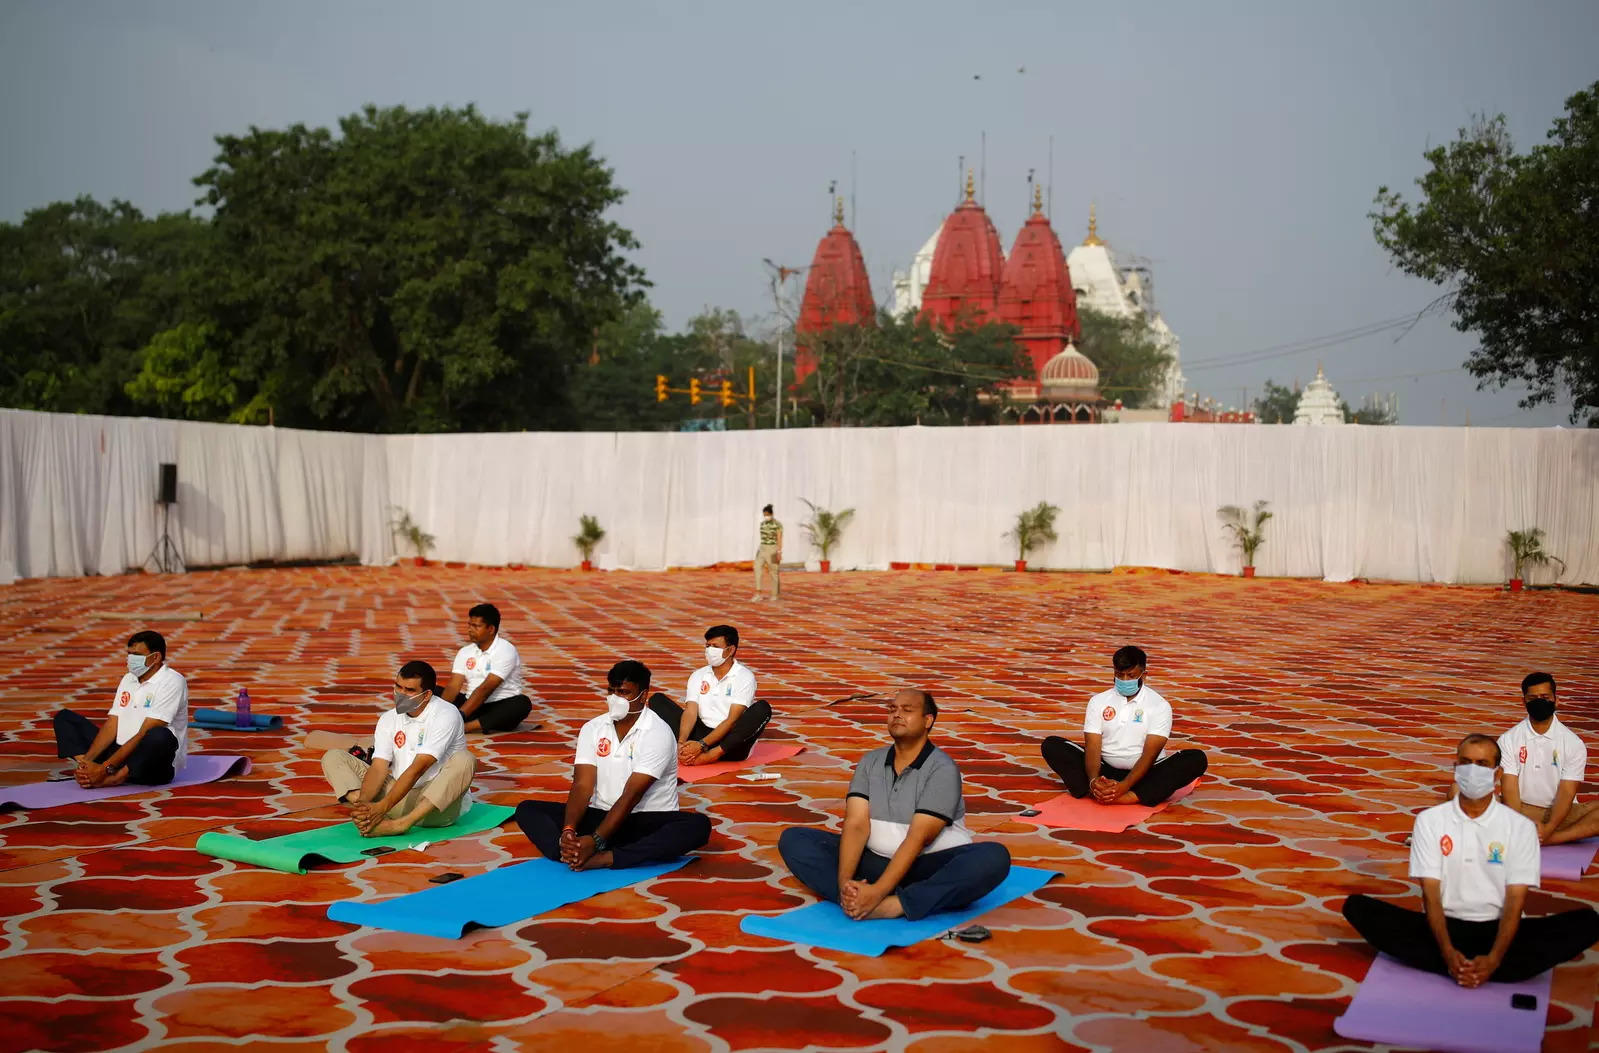 Talking Point: Should yoga be made a mandatory part of the curriculum